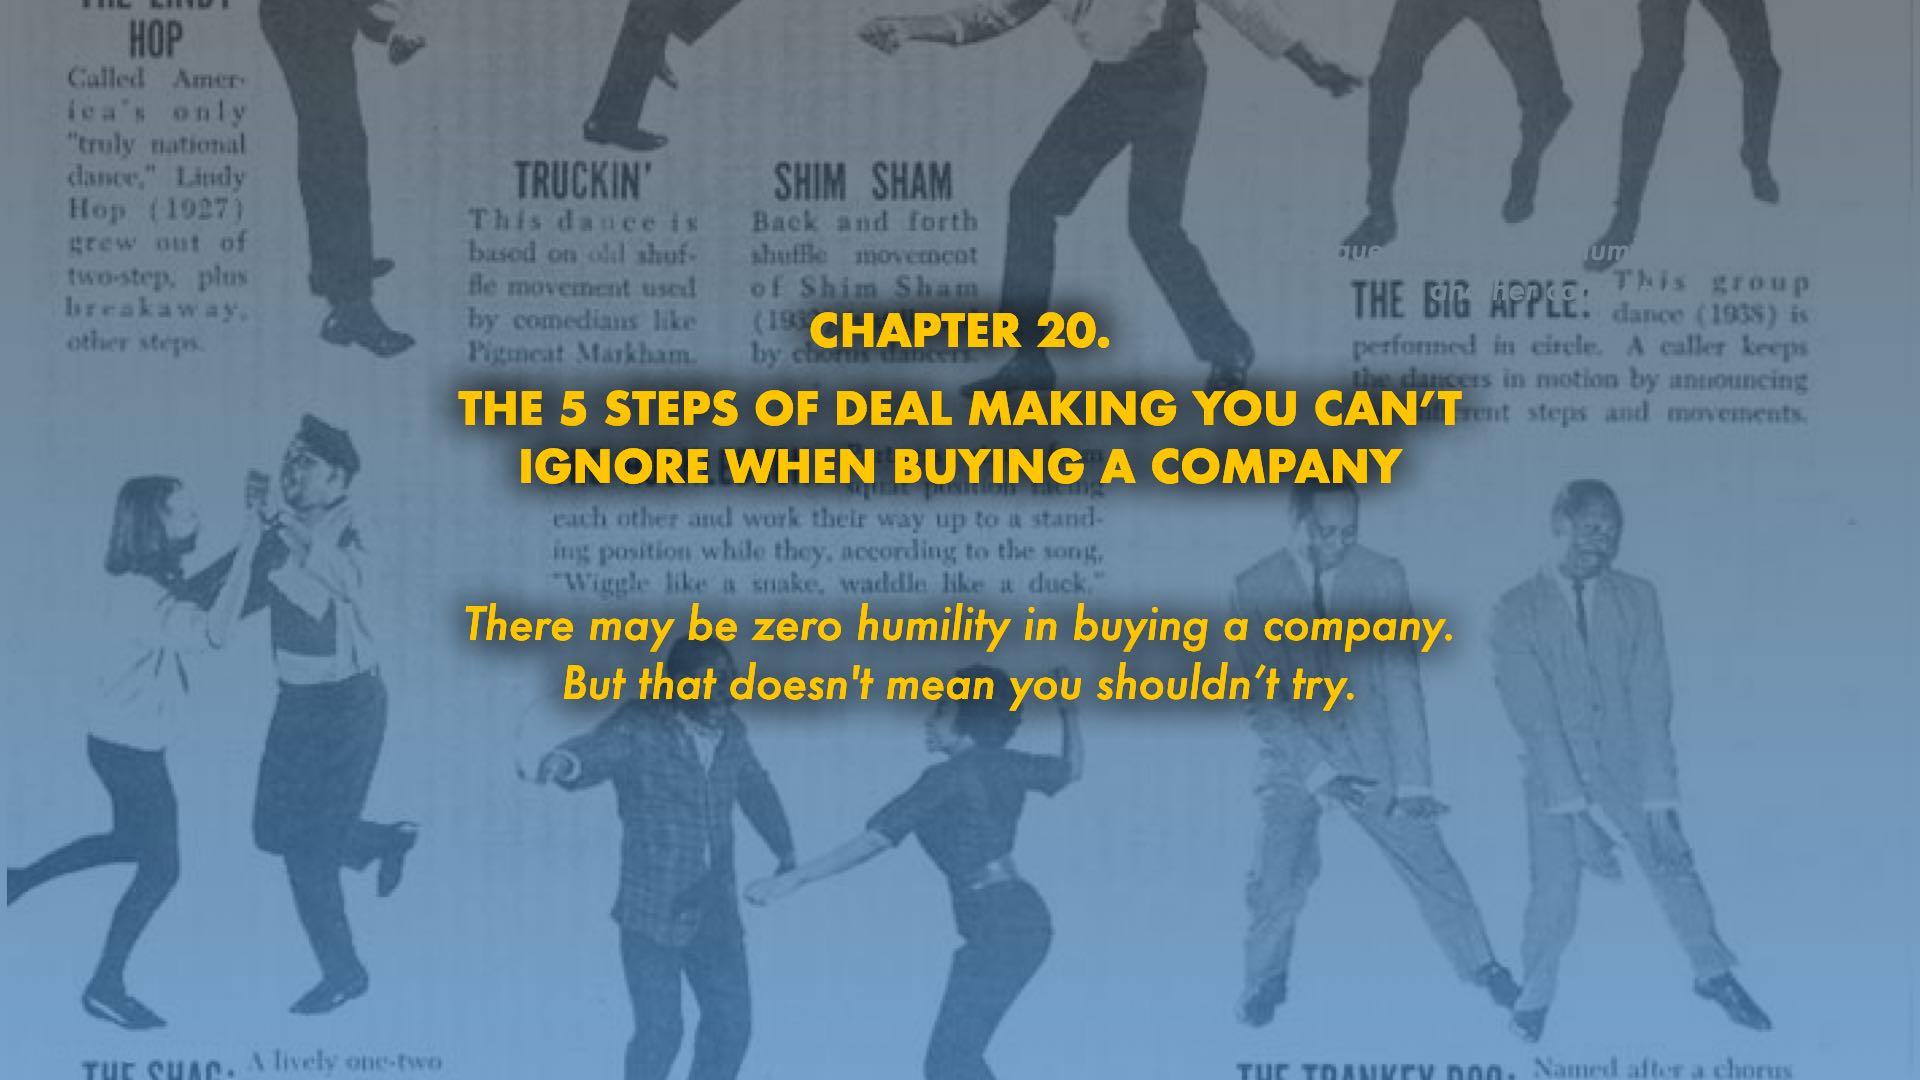 The 5 steps of dealmaking you can't ignore when buying a company